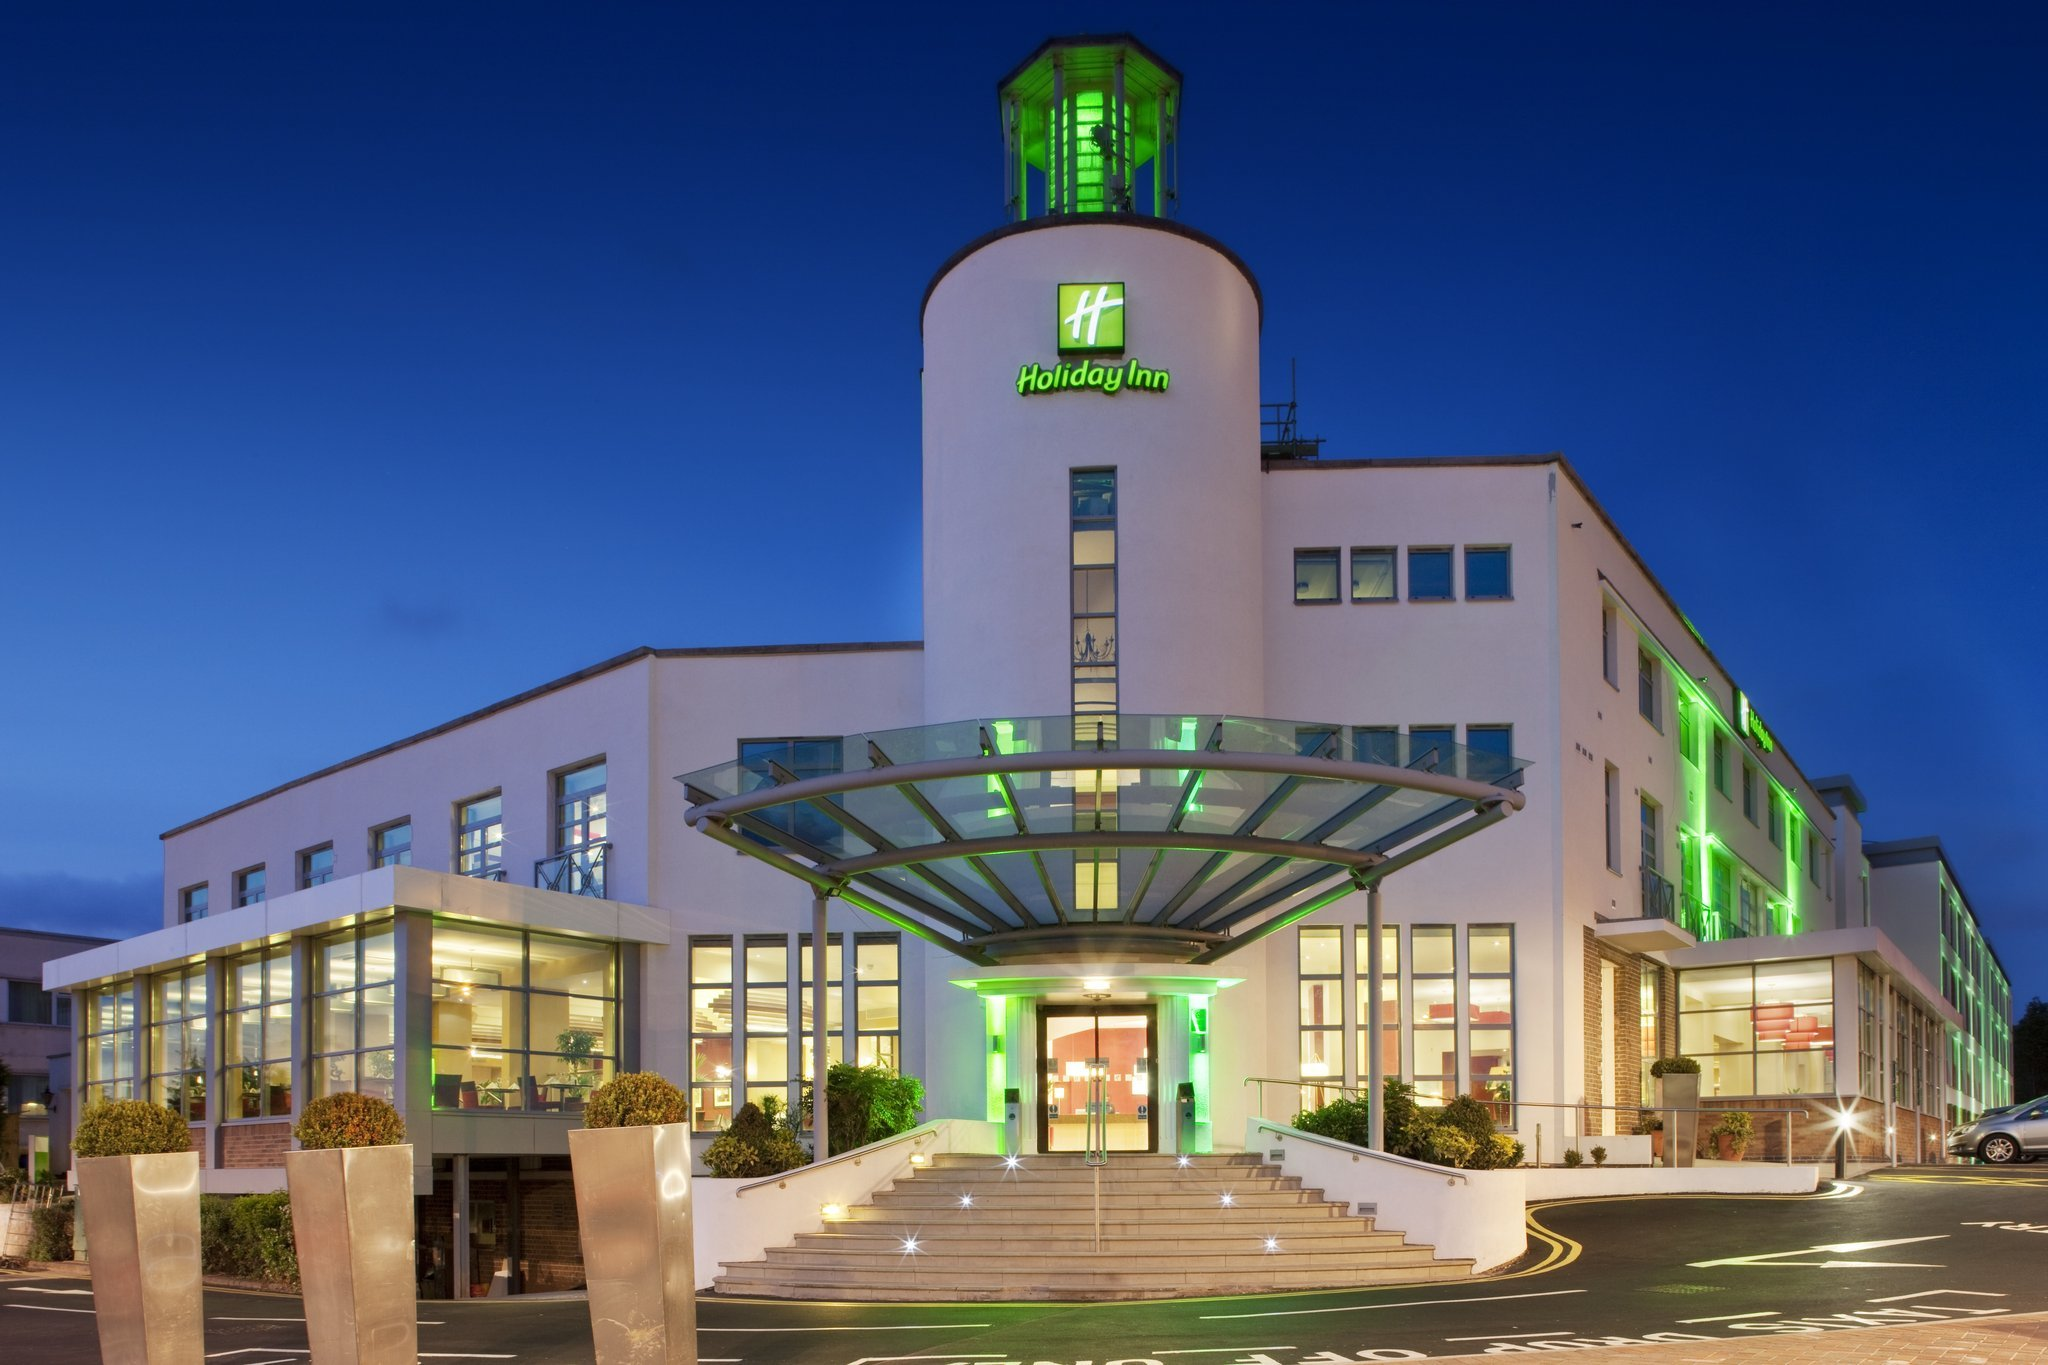 Holiday inn Birmingham airport- EDGE user conference 2018